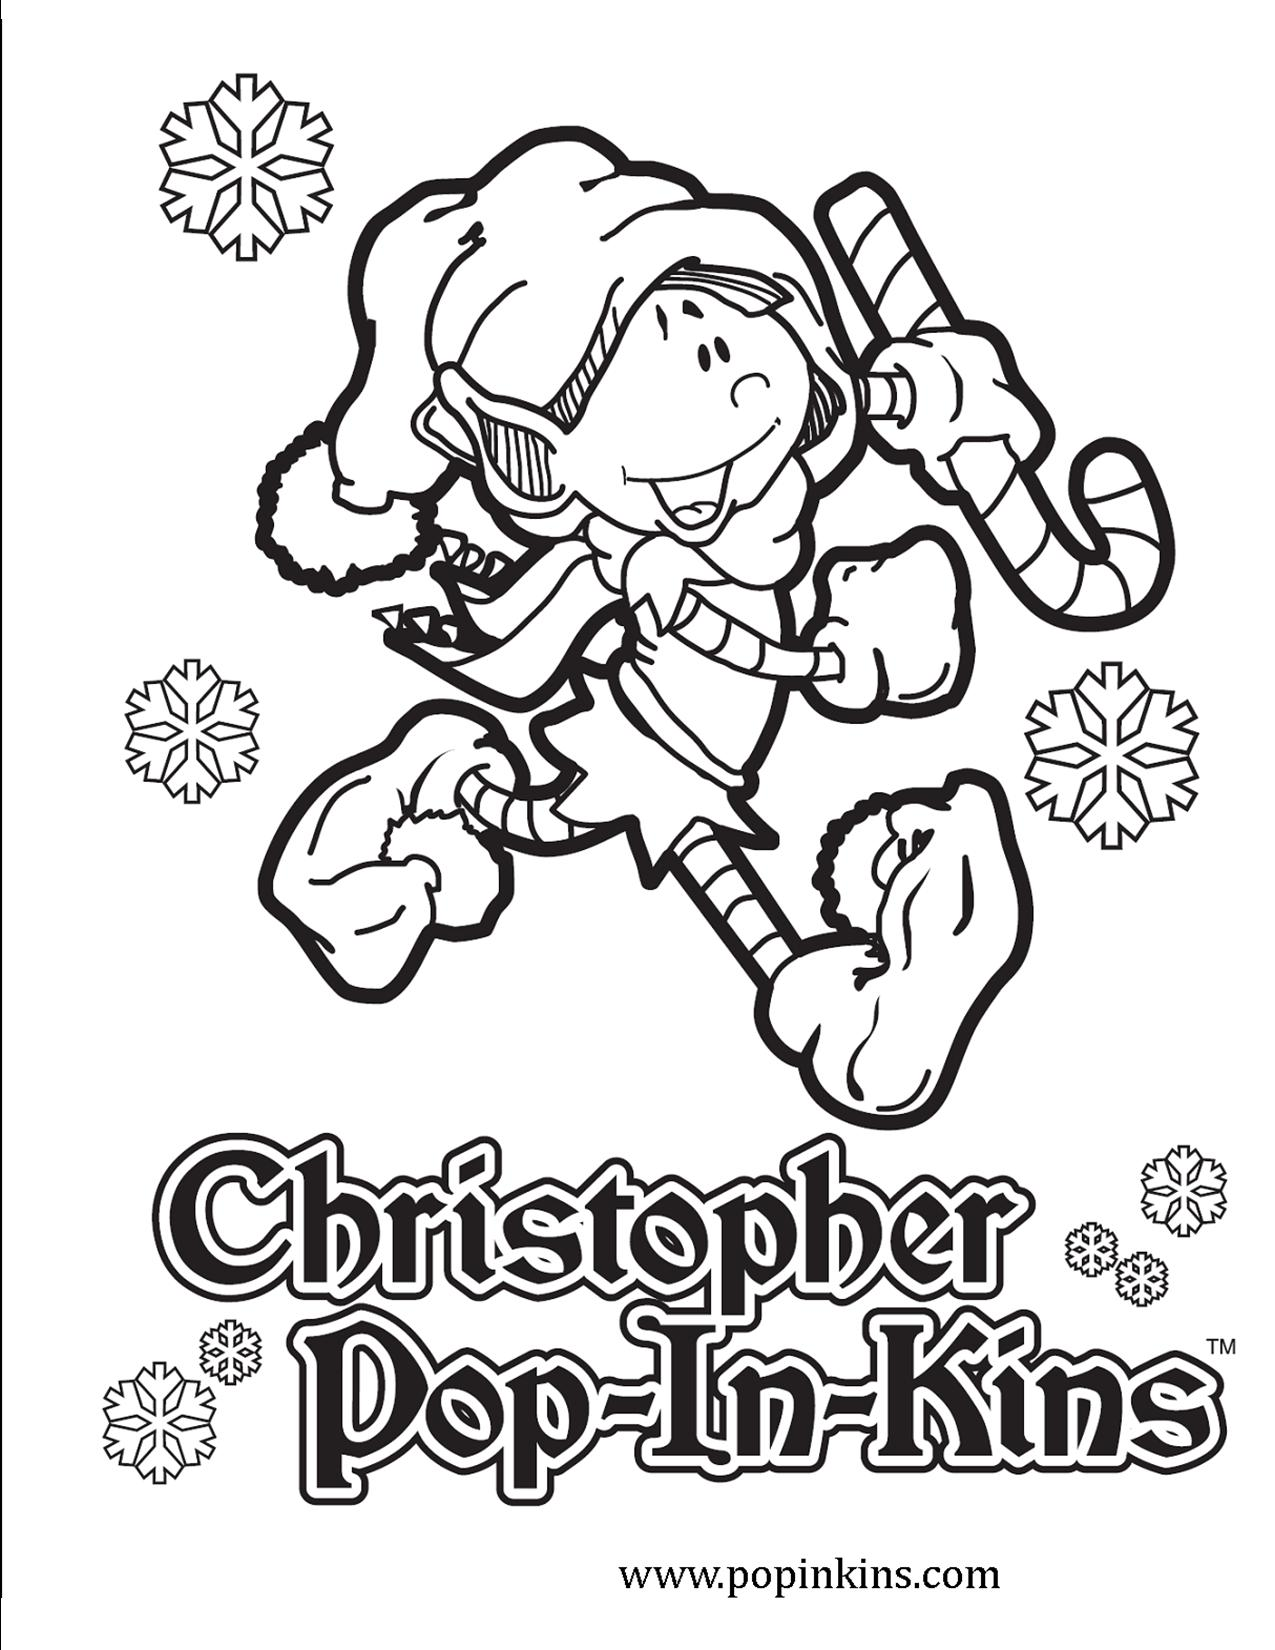 Shopkins coloring pages popcorn - Coloring Page 2 Jpg 1275x1650 Cartoon Pop Coloring Pages